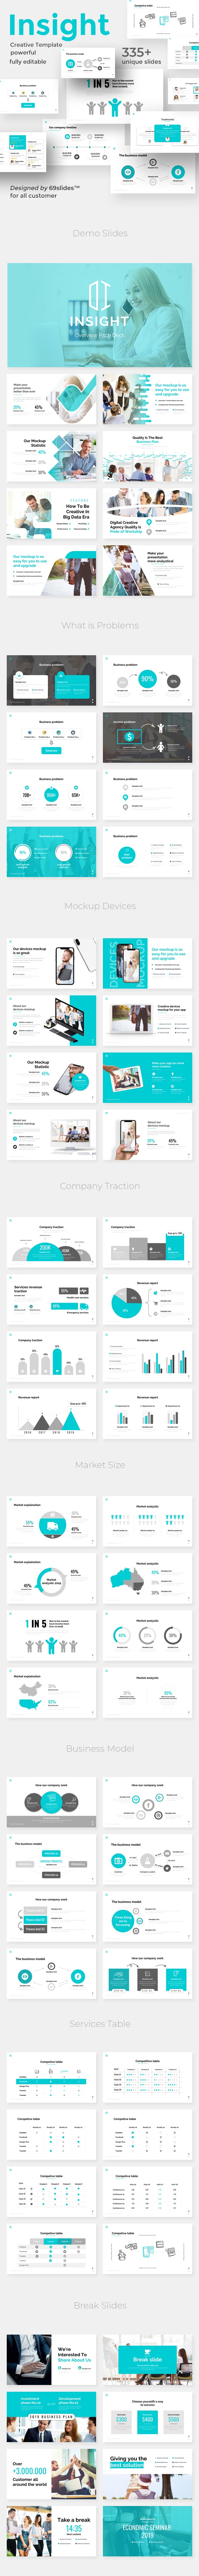 Overview Insight Pitch Deck Powerpoint Template - Business PowerPoint Templates